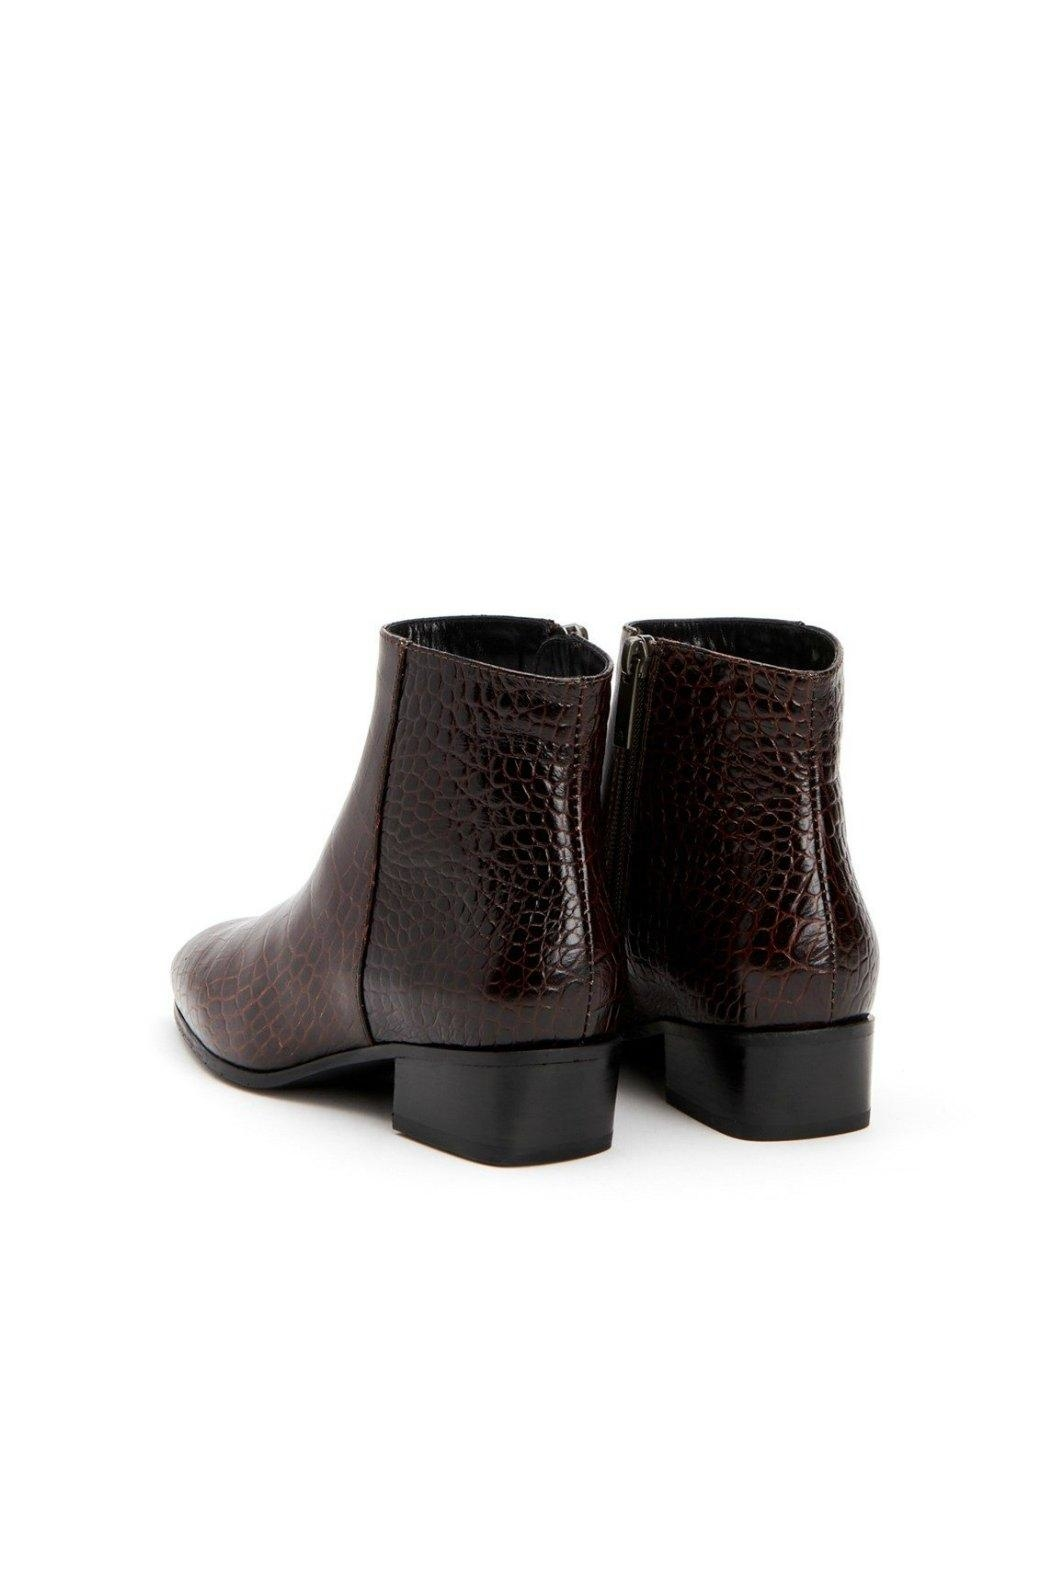 Aquatalia Fuoco Heeled Bootie - Back Cropped Image